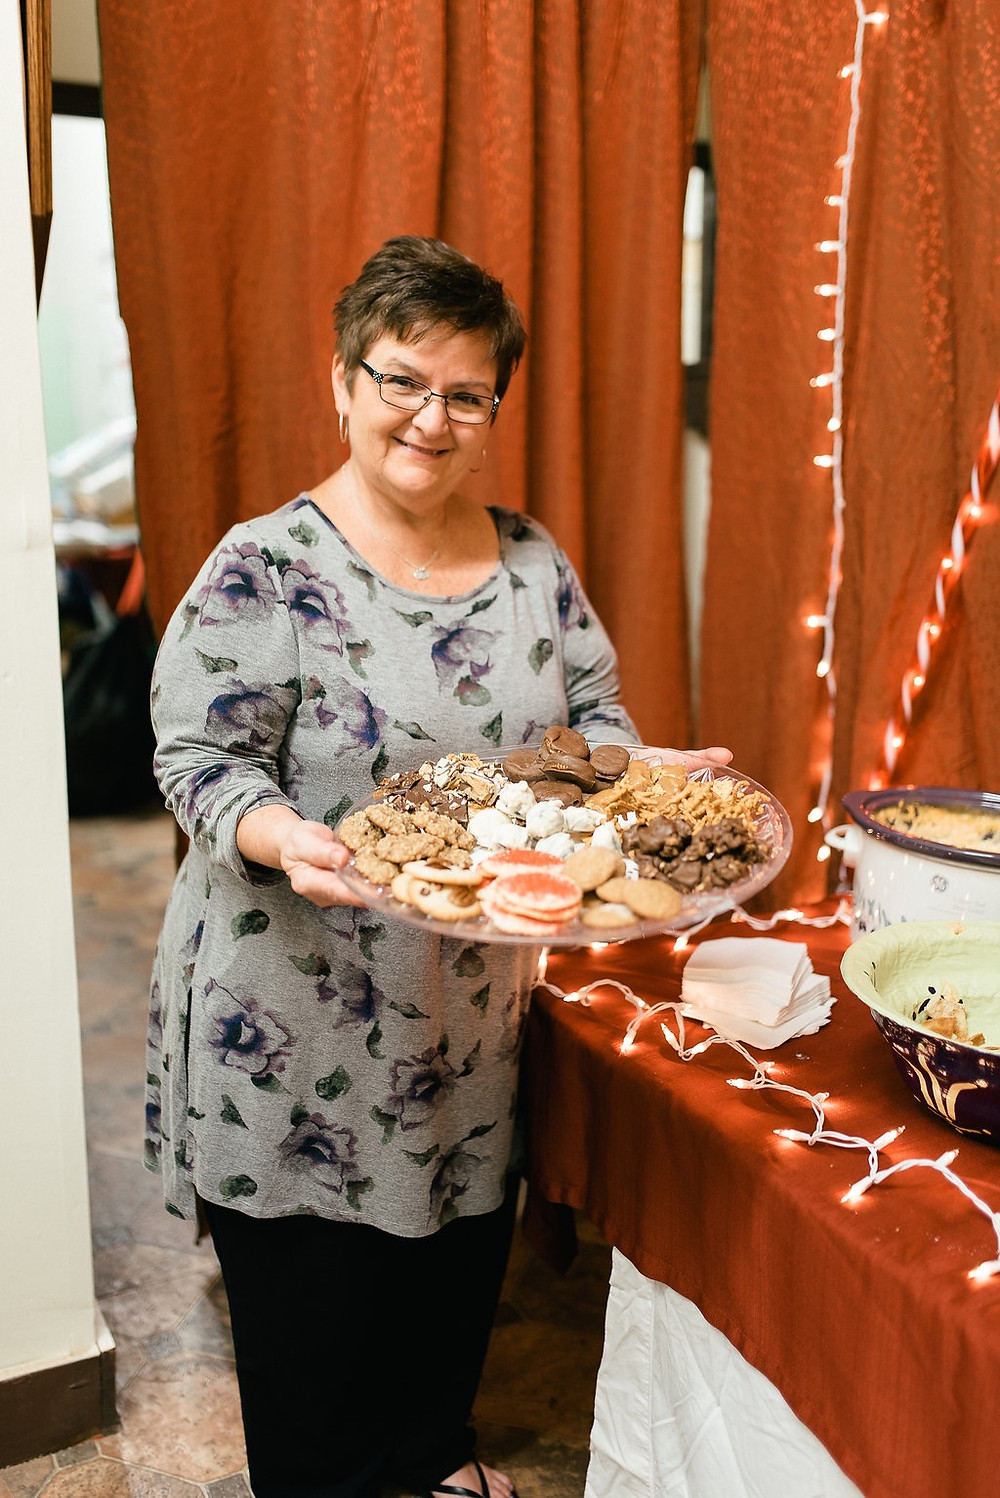 Jean Cobb bakes her famous desserts and Tinker Toffee